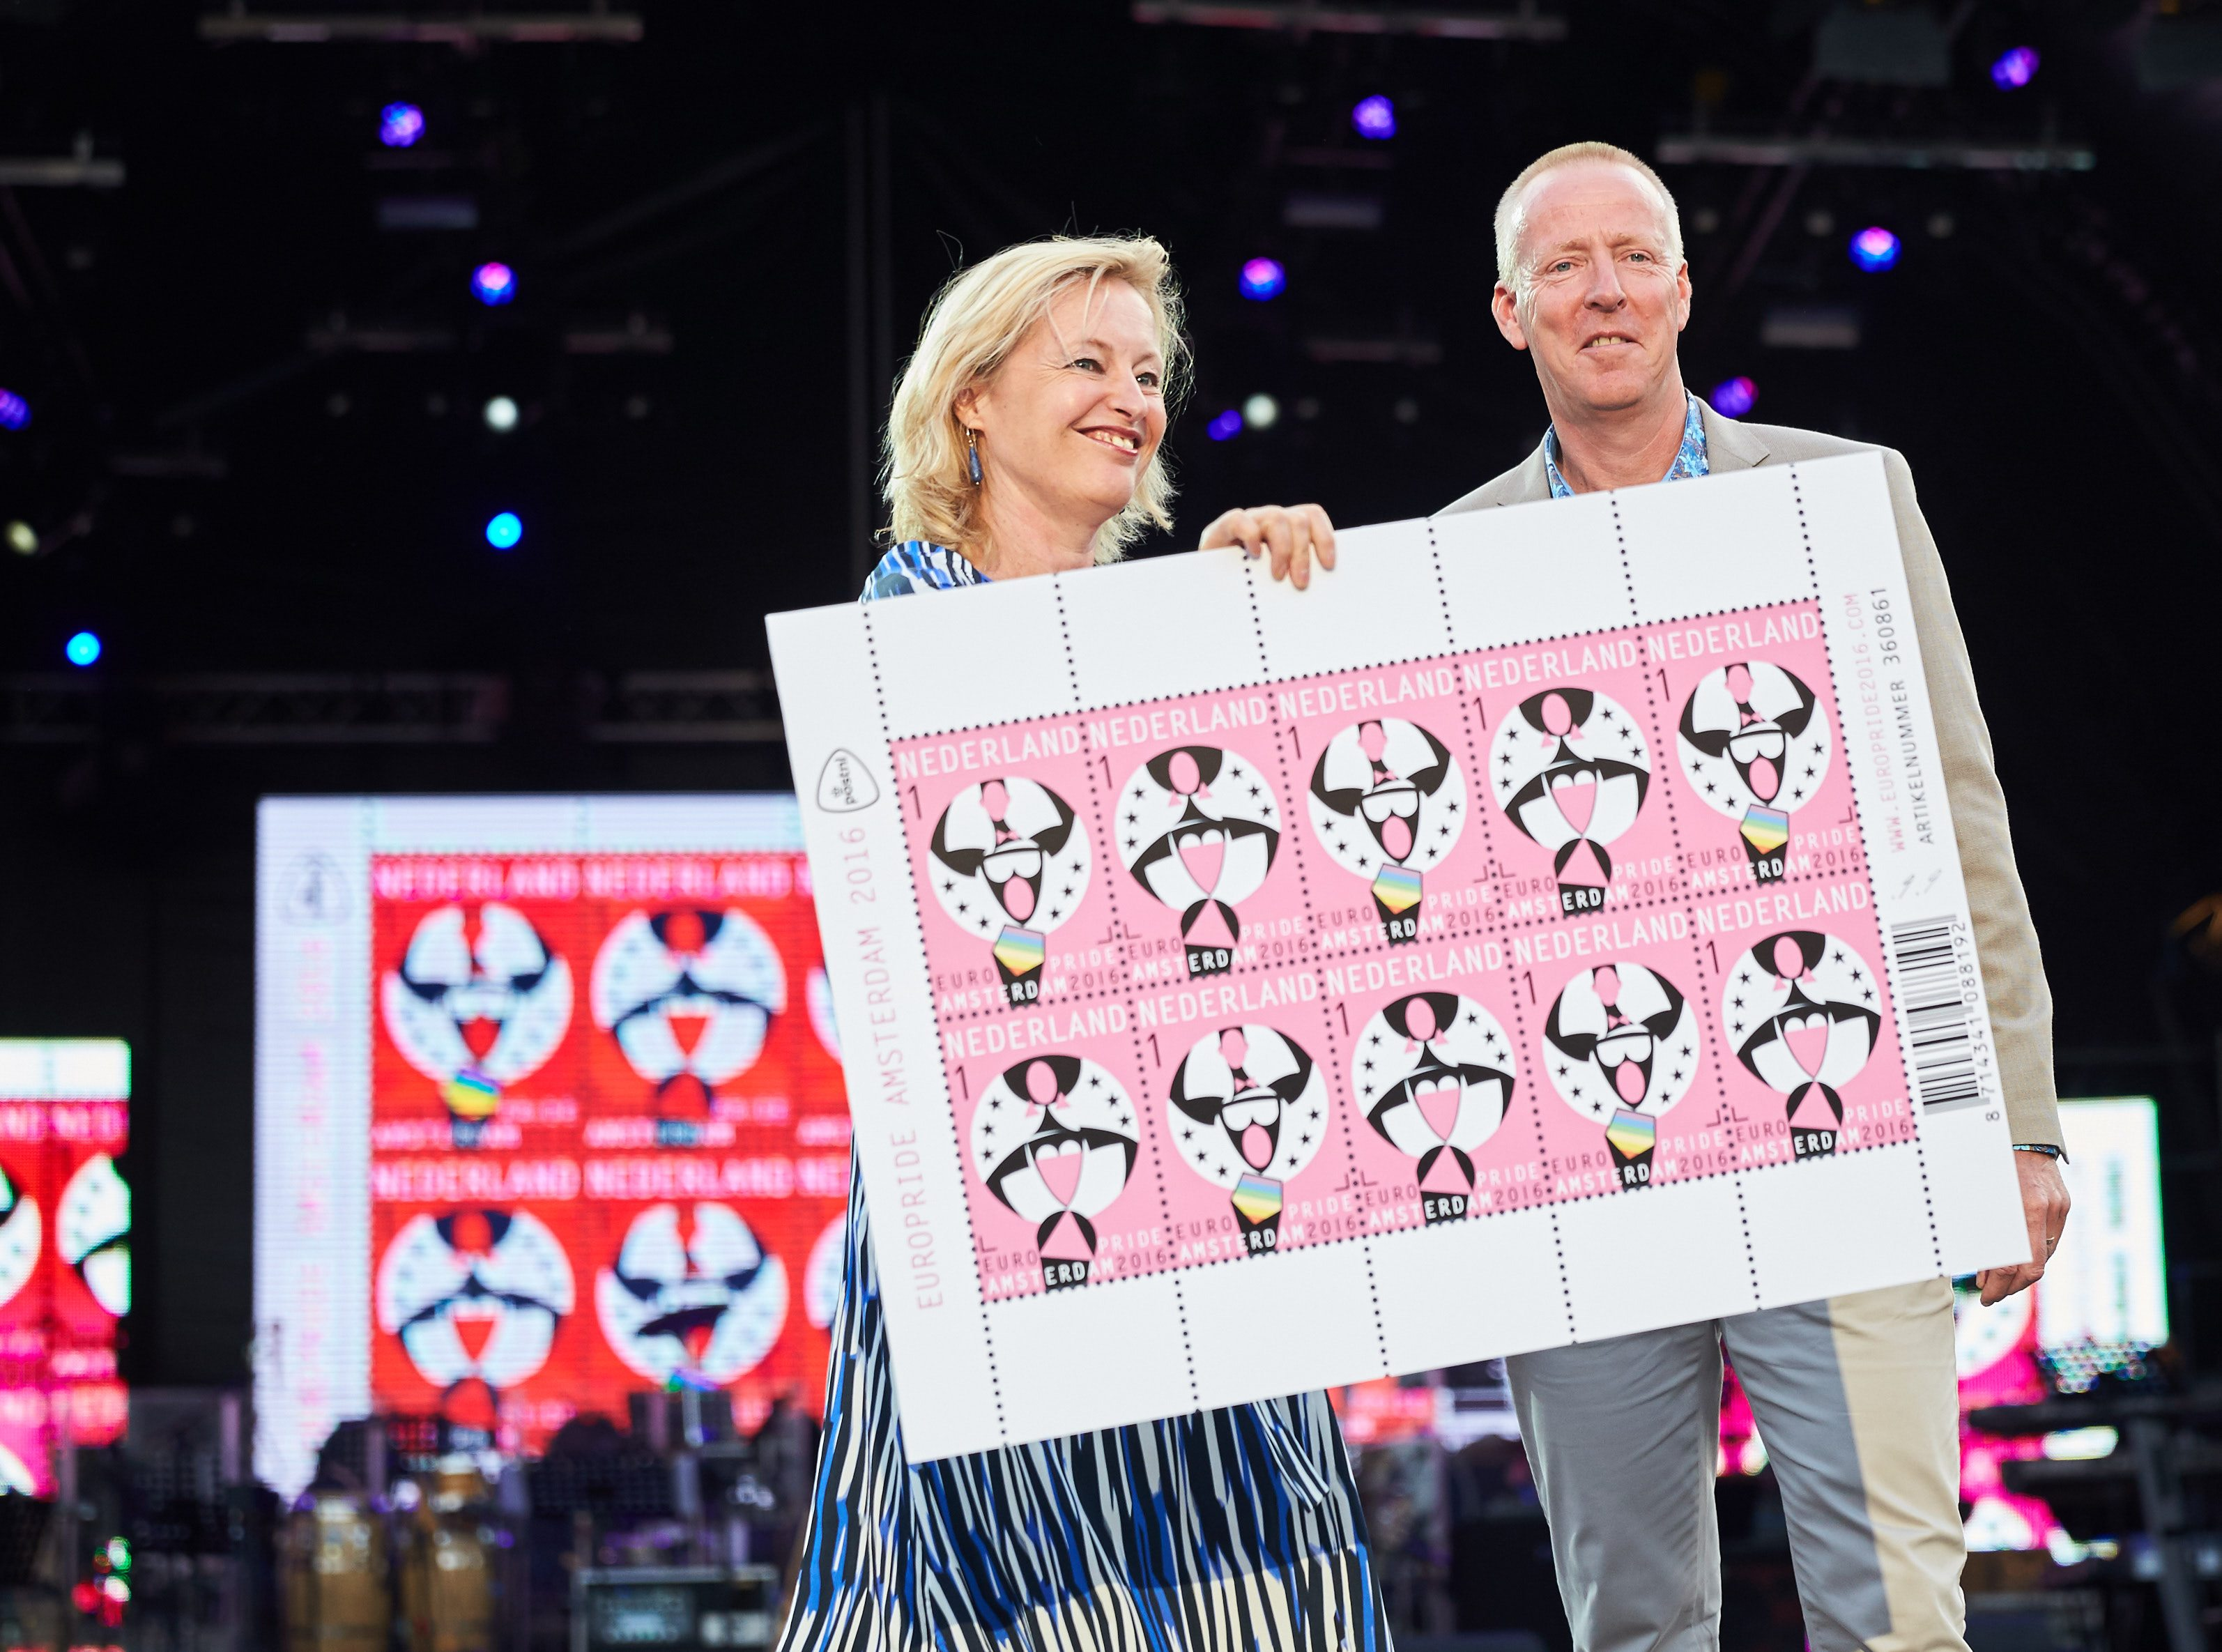 EuroPride 2016 – Join our Freedom! One Special stamp sheet released by PostNL